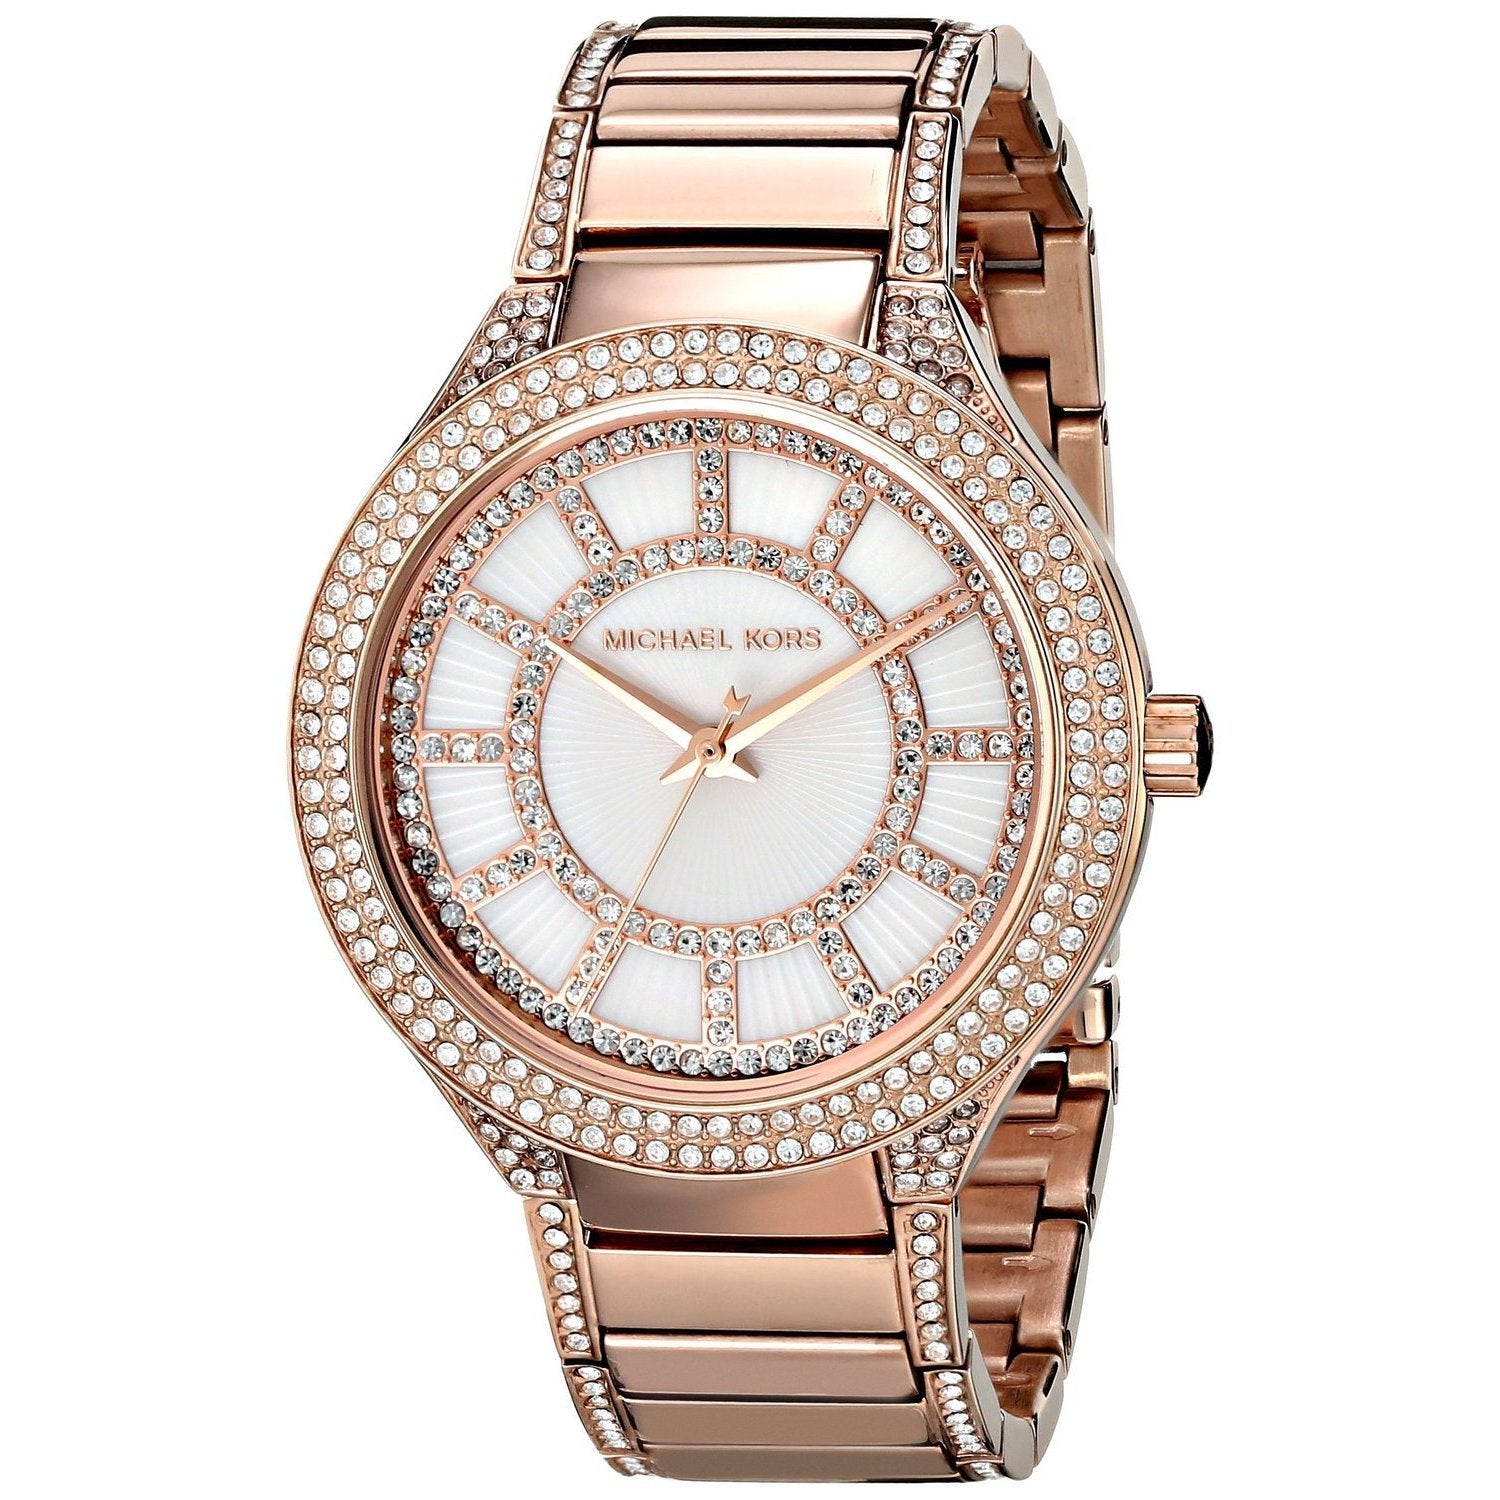 Michael Kors Women's MK3313 Kerry Round Rose Gold-tone Br...